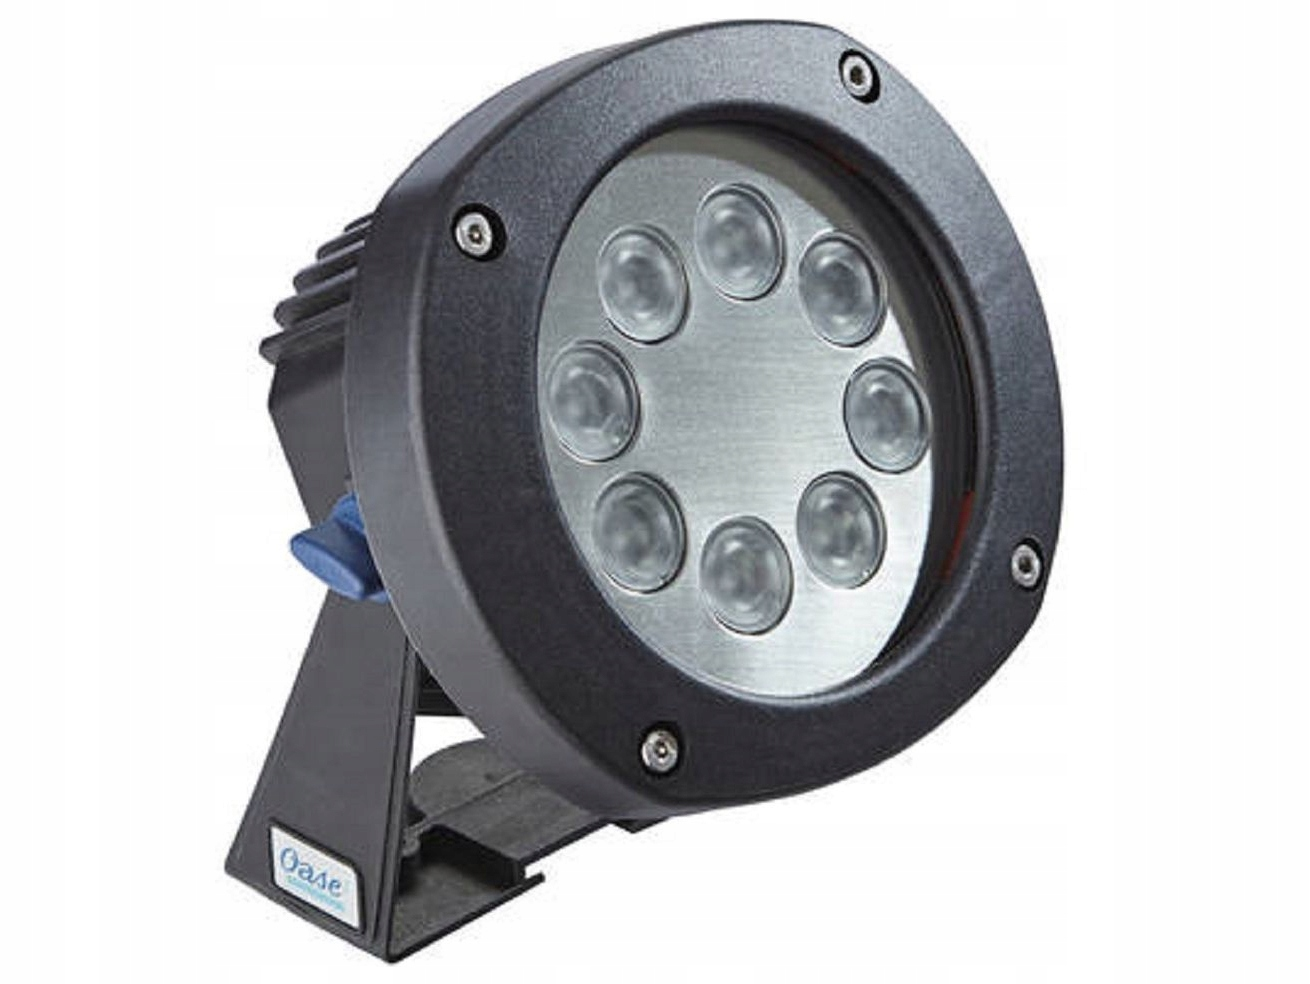 Oase LunAqua Power LED XL Narrow Spot 4000 lampa